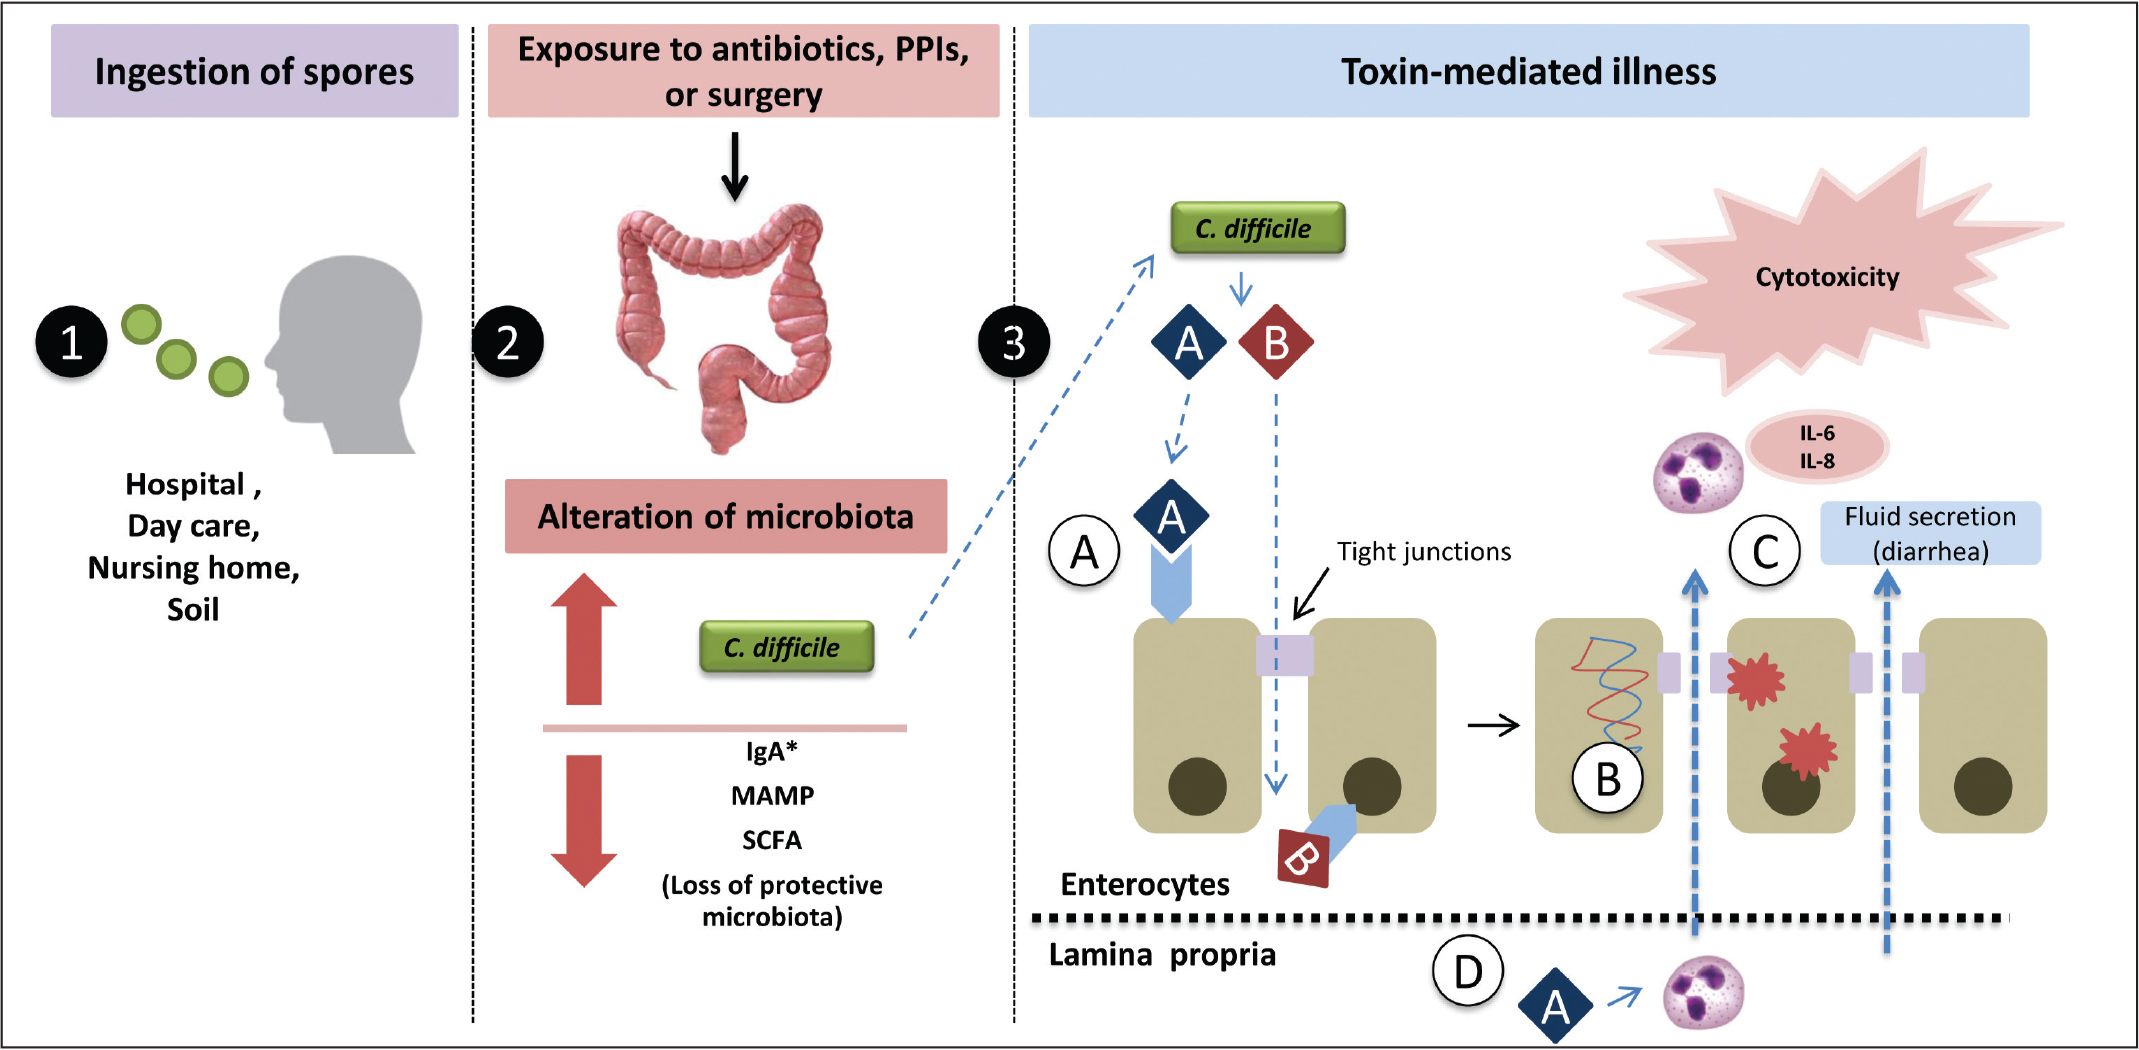 Events in the pathogenesis of Clostridium difficile infection. C. difficile infection begins with dysbiosis created by antibiotics, proton-pump inhibitors, or surgery, allowing colonization of toxigenic strains of C. difficile. Disease is caused by toxin A and B production. (A) These toxins bind to receptors on the enterocytes. (B) This causes disorganization of actin microfilaments resulting in (C) opening of tight junctions and destruction of enterocytes. (D) Toxin A diffuses through the open junction and induces activation of neutrophils. The consequence is increased permeability and damage of enterocytes from local inflammation, resulting in the clinical symptoms of C. difficile infection. IgA, immunoglobulin A; MAMP, microbial-associated molecular patterns; PPI, proton-pump inhibitor; SCFA, short-chain fatty acid.